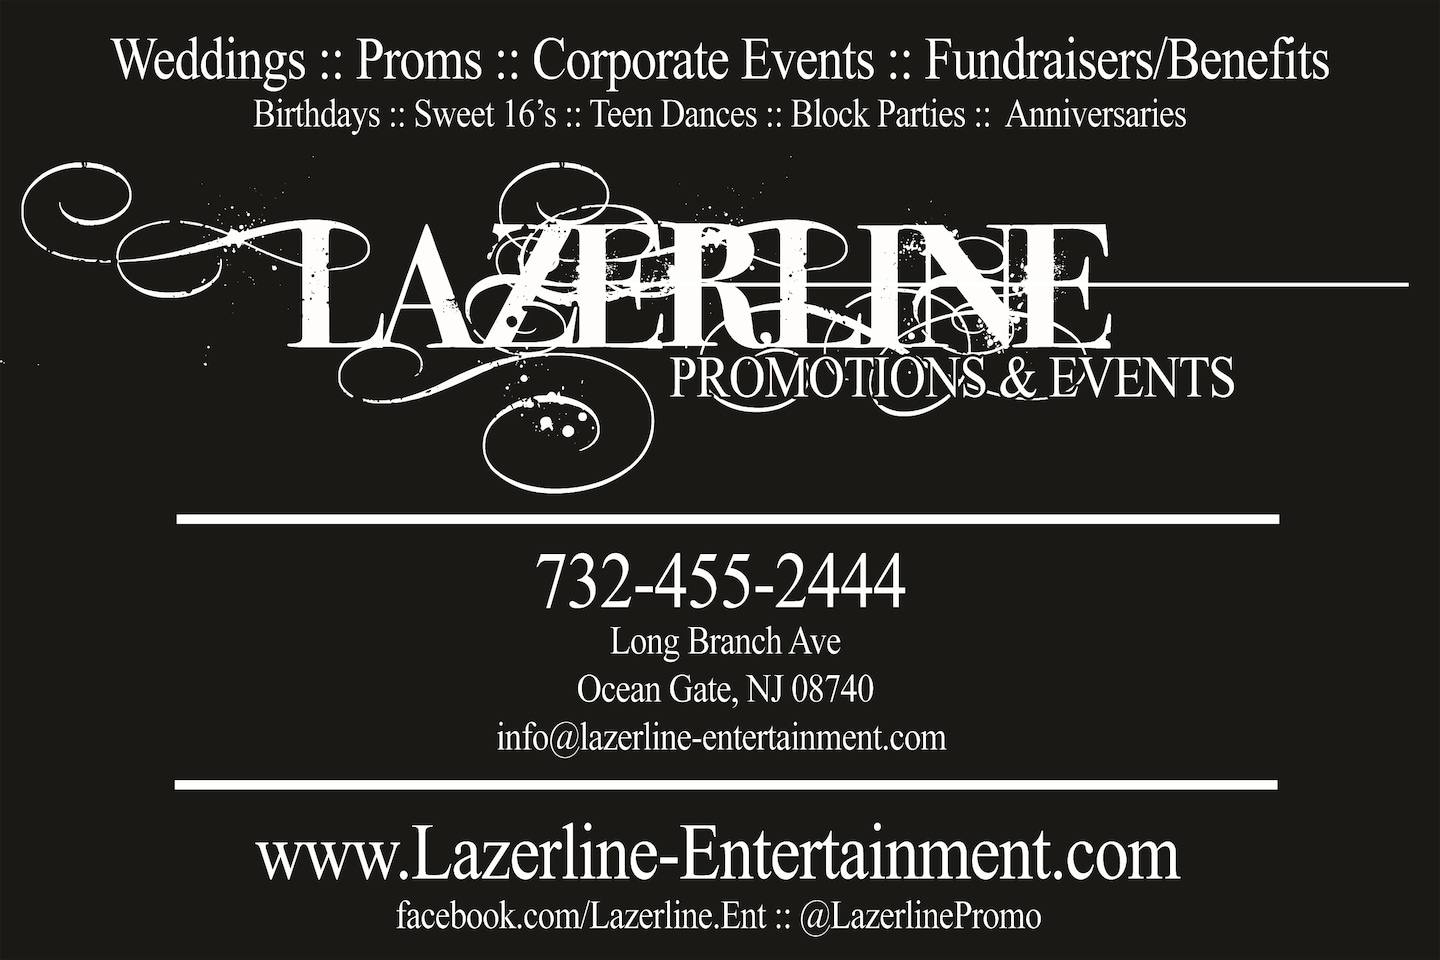 Lazerline Promotion's & Event's